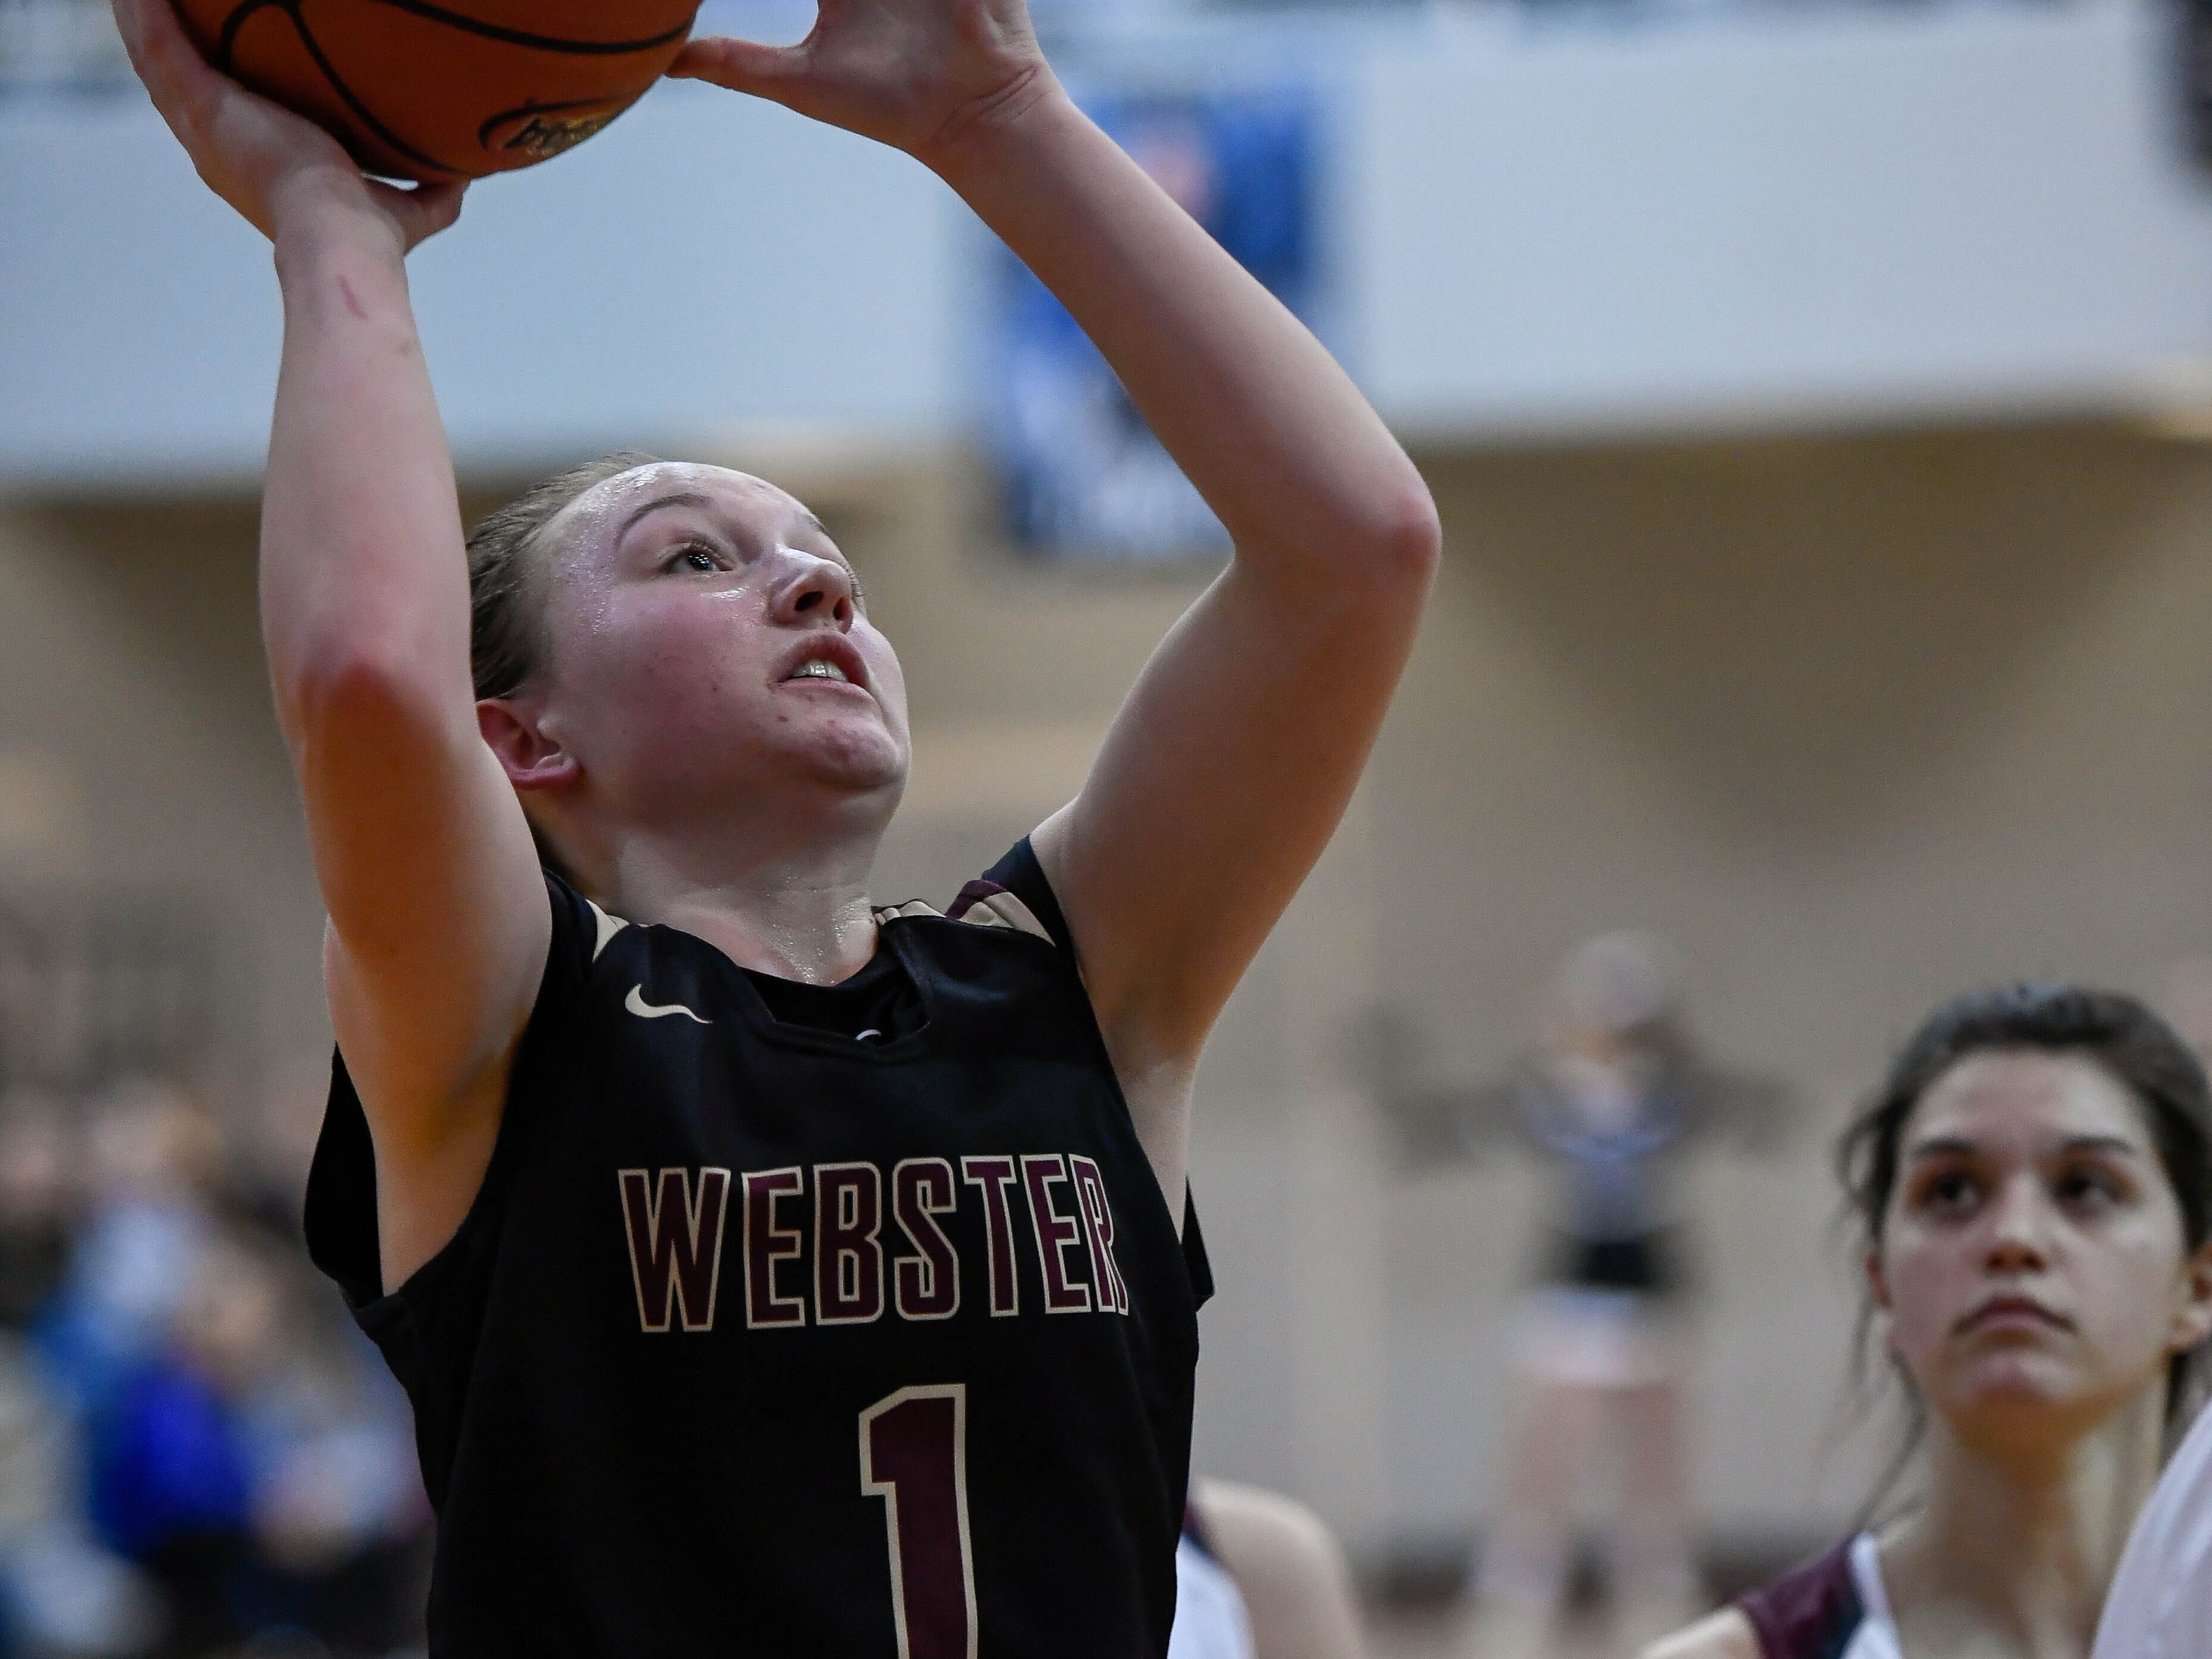 Webster County's Sadie Wurth (1) takes a shoot at the basket as the Webster County Lady Trojans play the Henderson County Colonels for the Girls Second Region Championship at the Rocket Arena in Marion Tuesday, March 5, 2019.